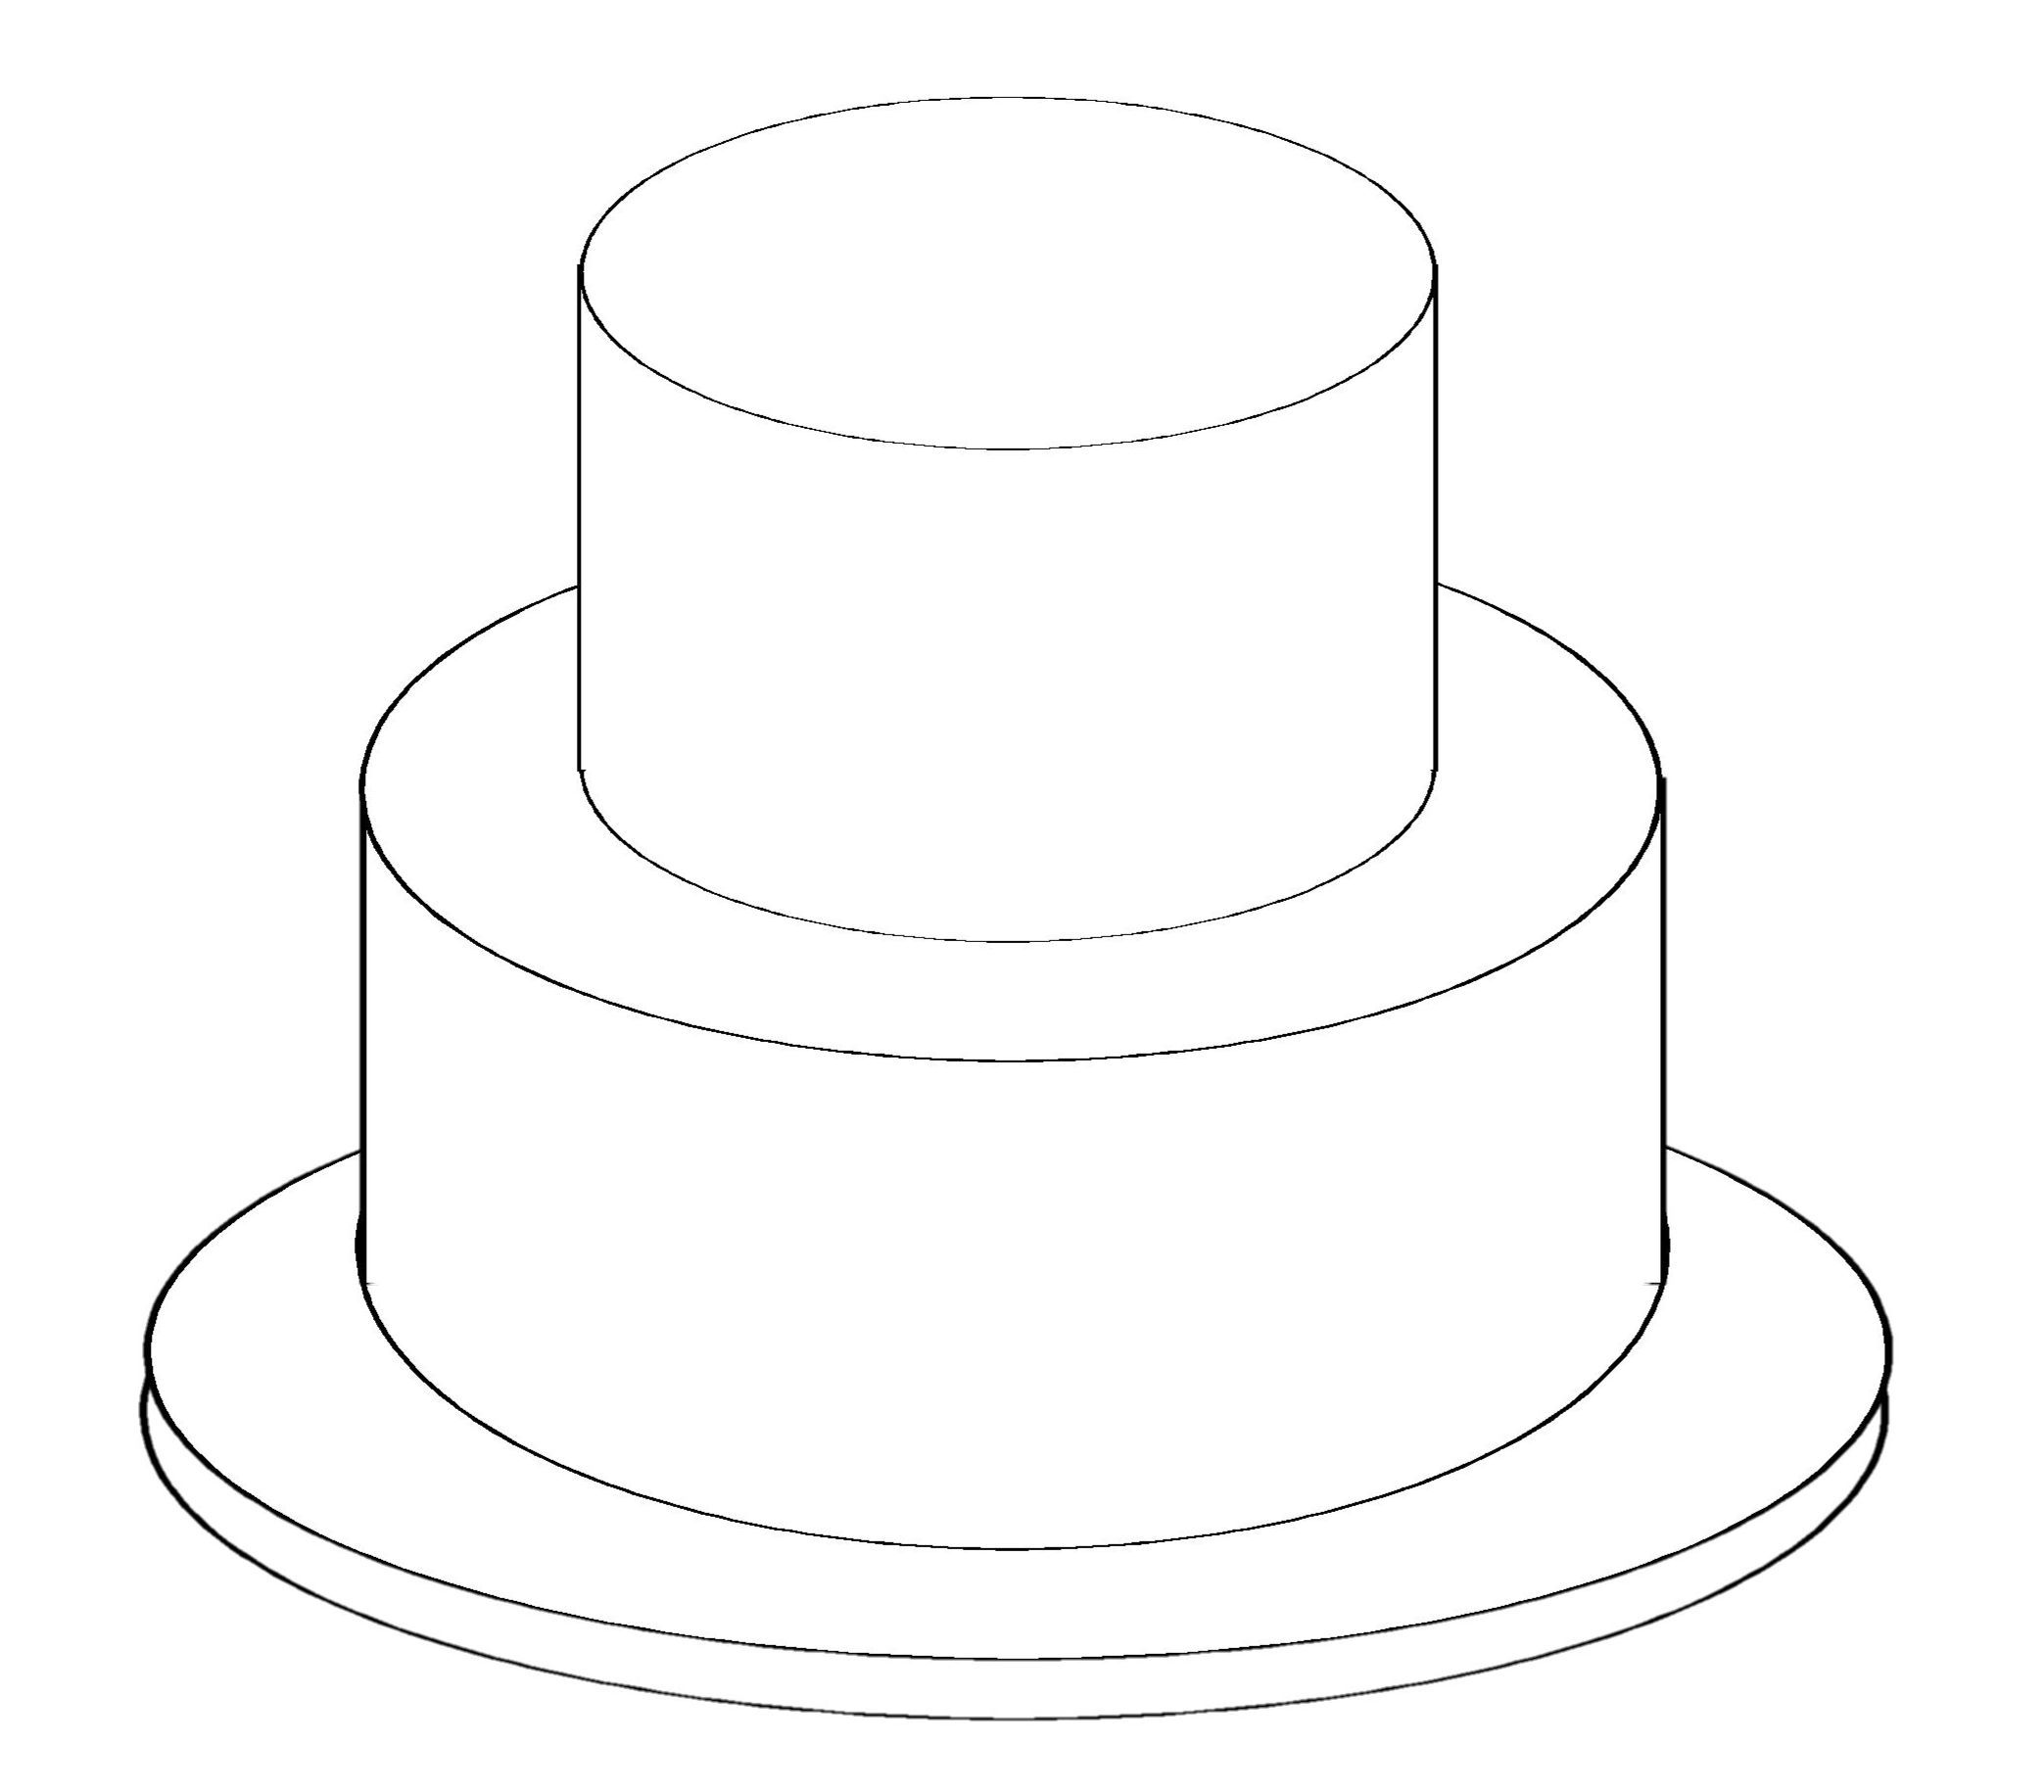 number 2 cake template - round cake baking and serving guides this link tells you